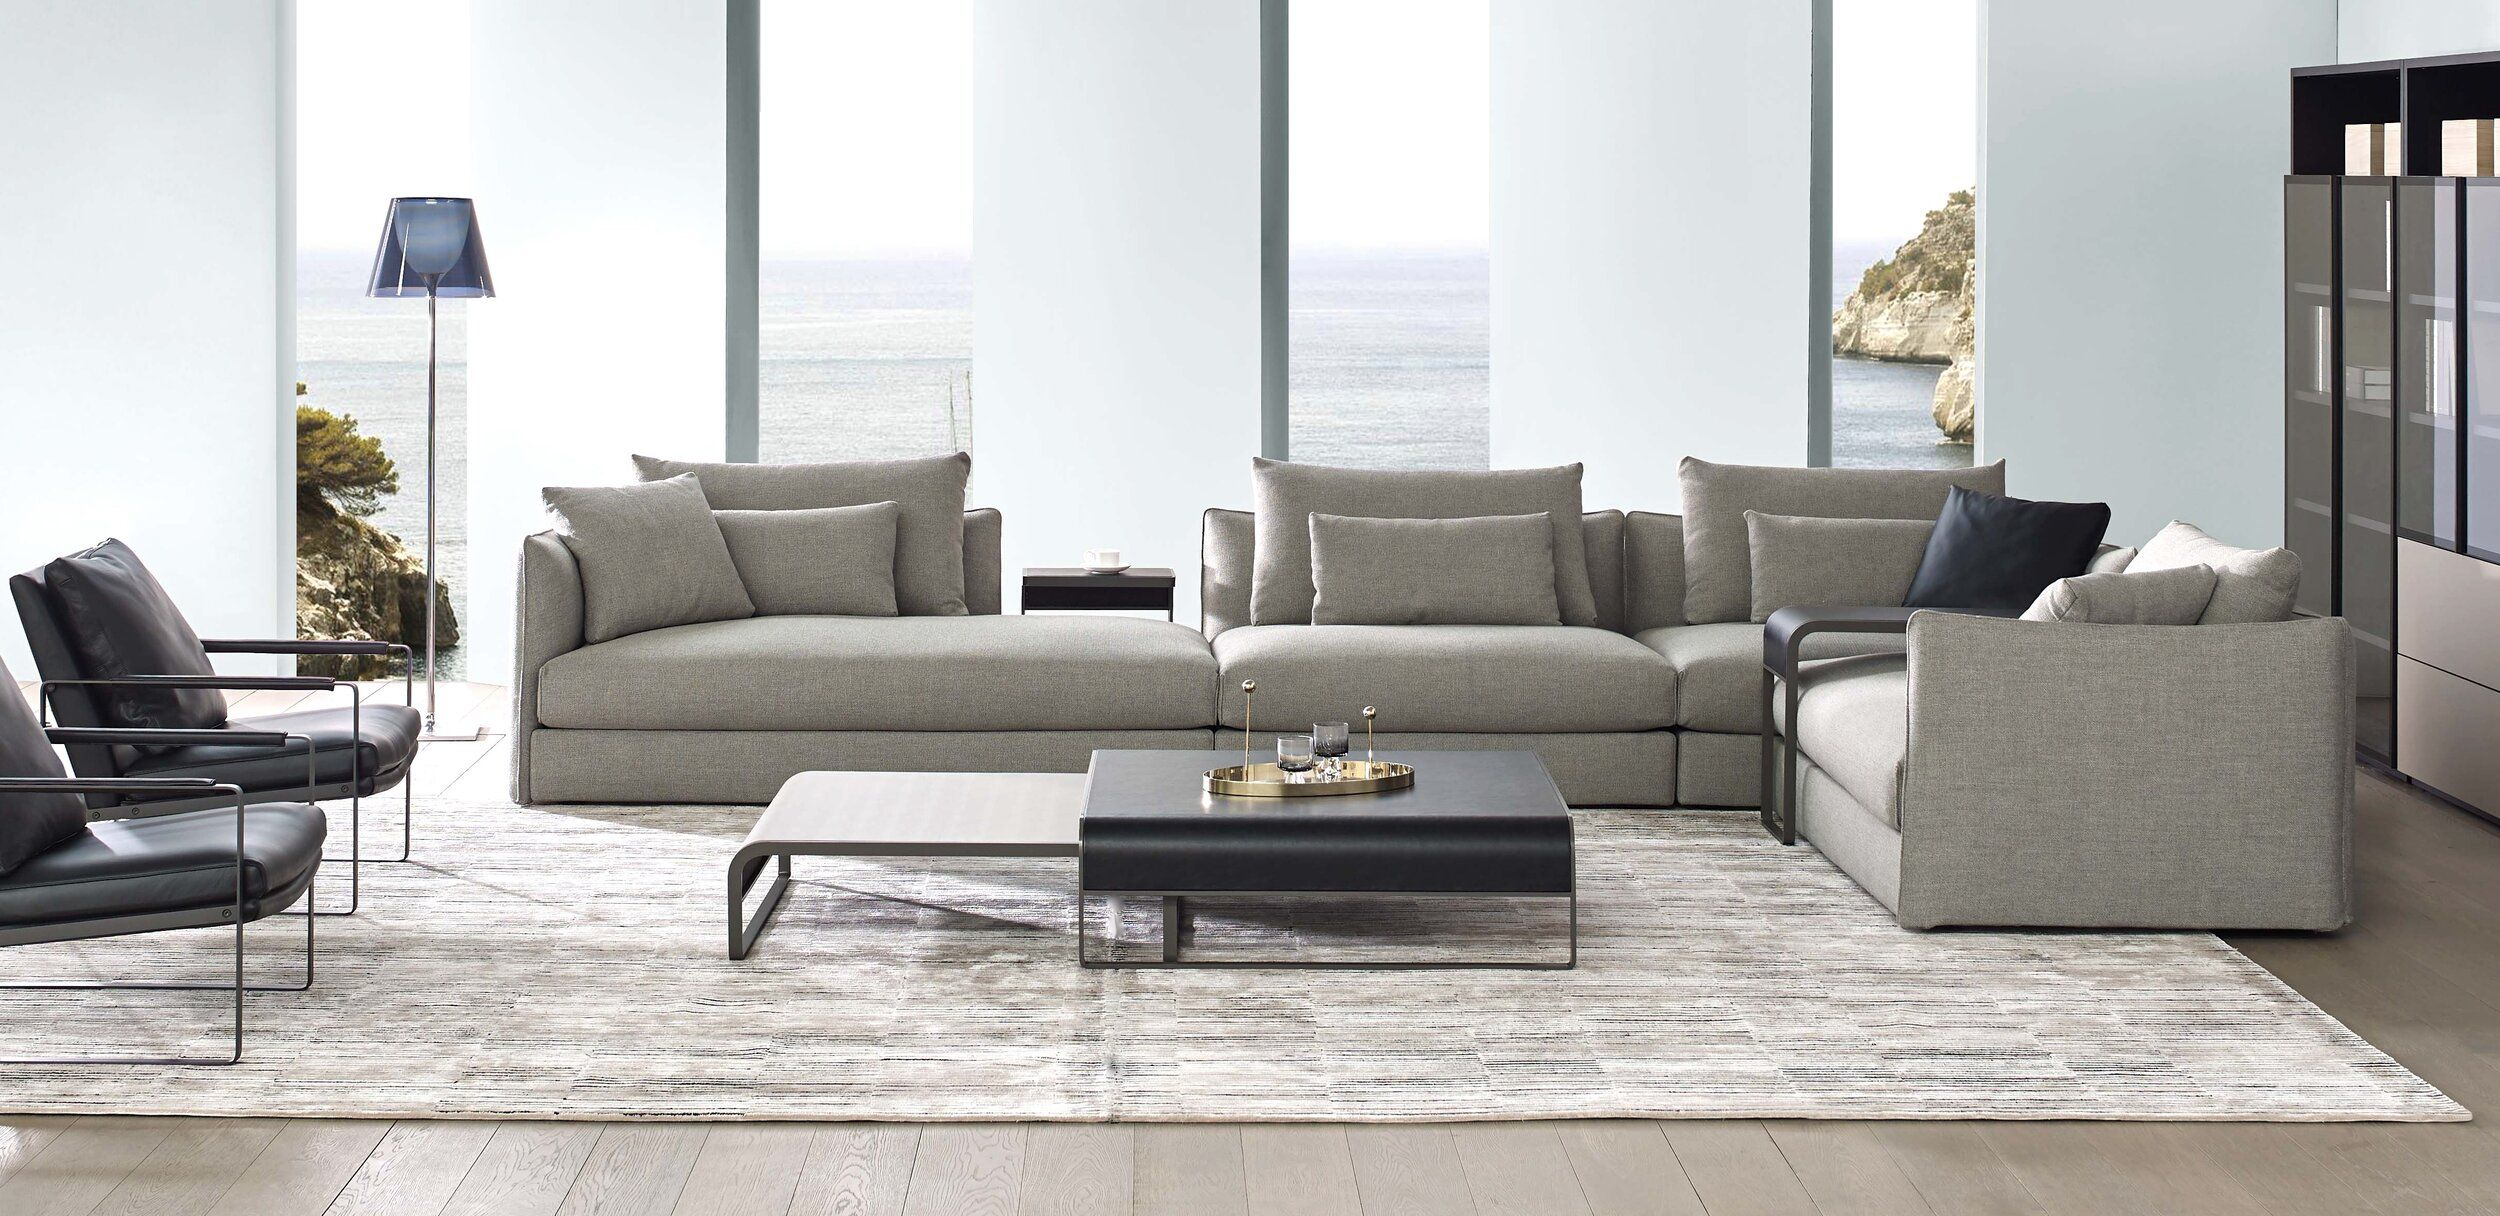 RM Living Cincinnati Contemporary Interior Furniture Design by Camerich